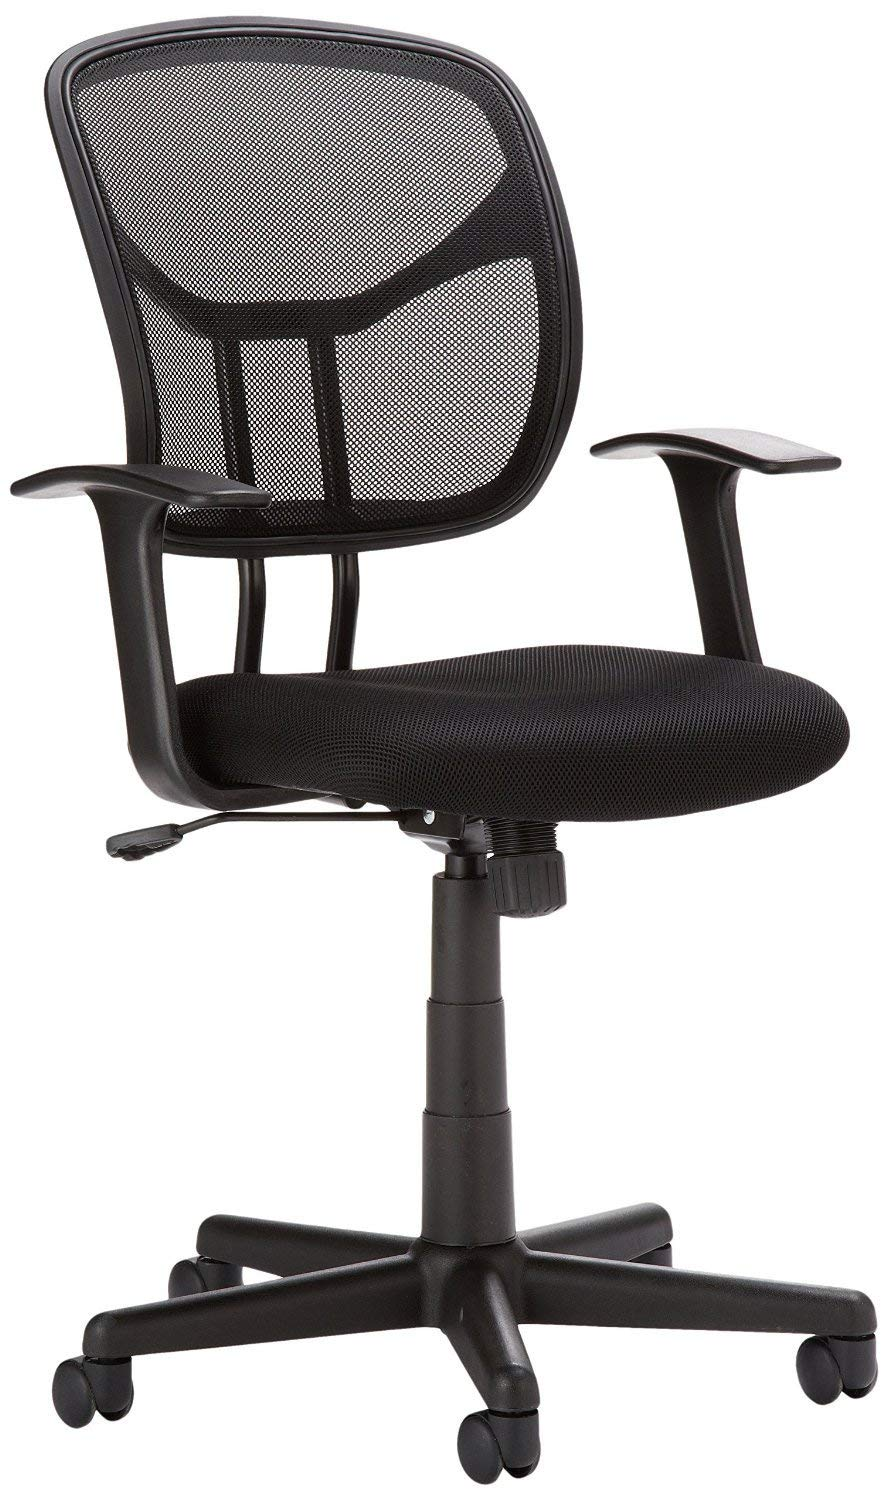 Best desk chairs for any office Herman Miller Steelcase